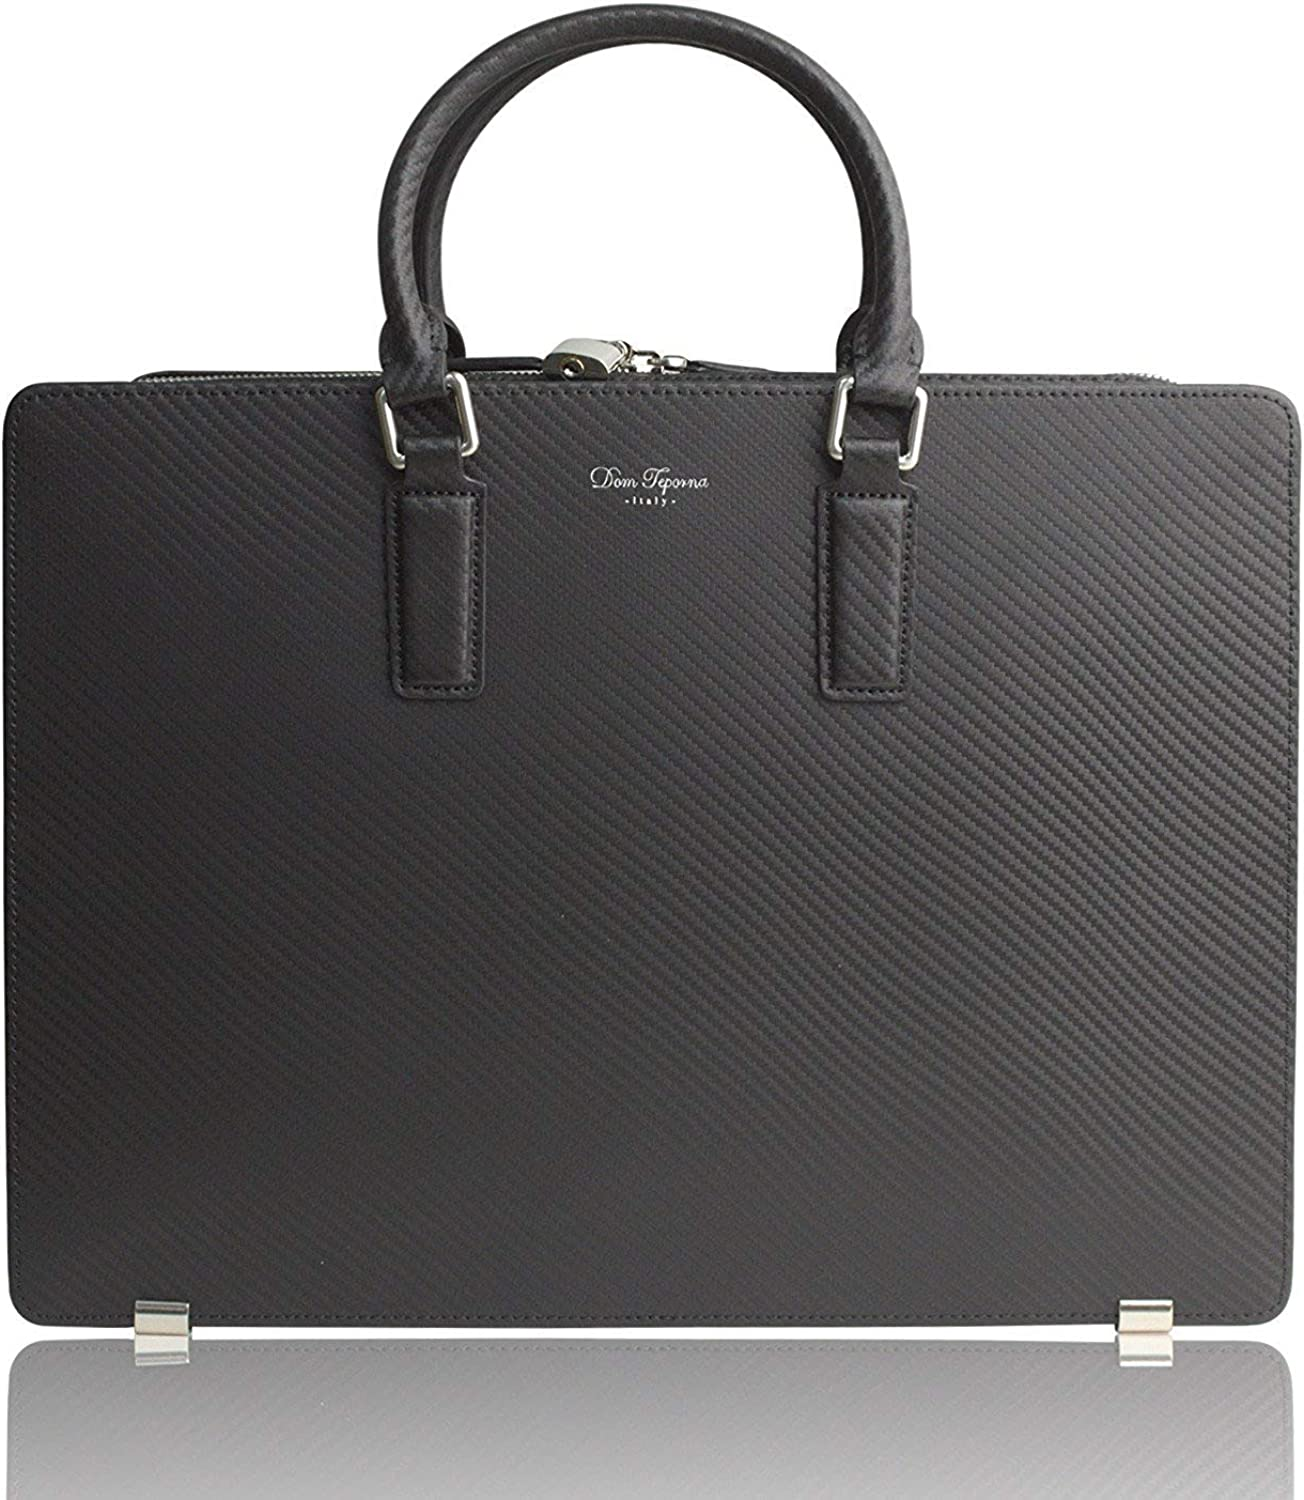 Dom Teporna Italy Carbon Genuine Leather Briefcase for Men Business Bag Water Resistant Designed in Japan